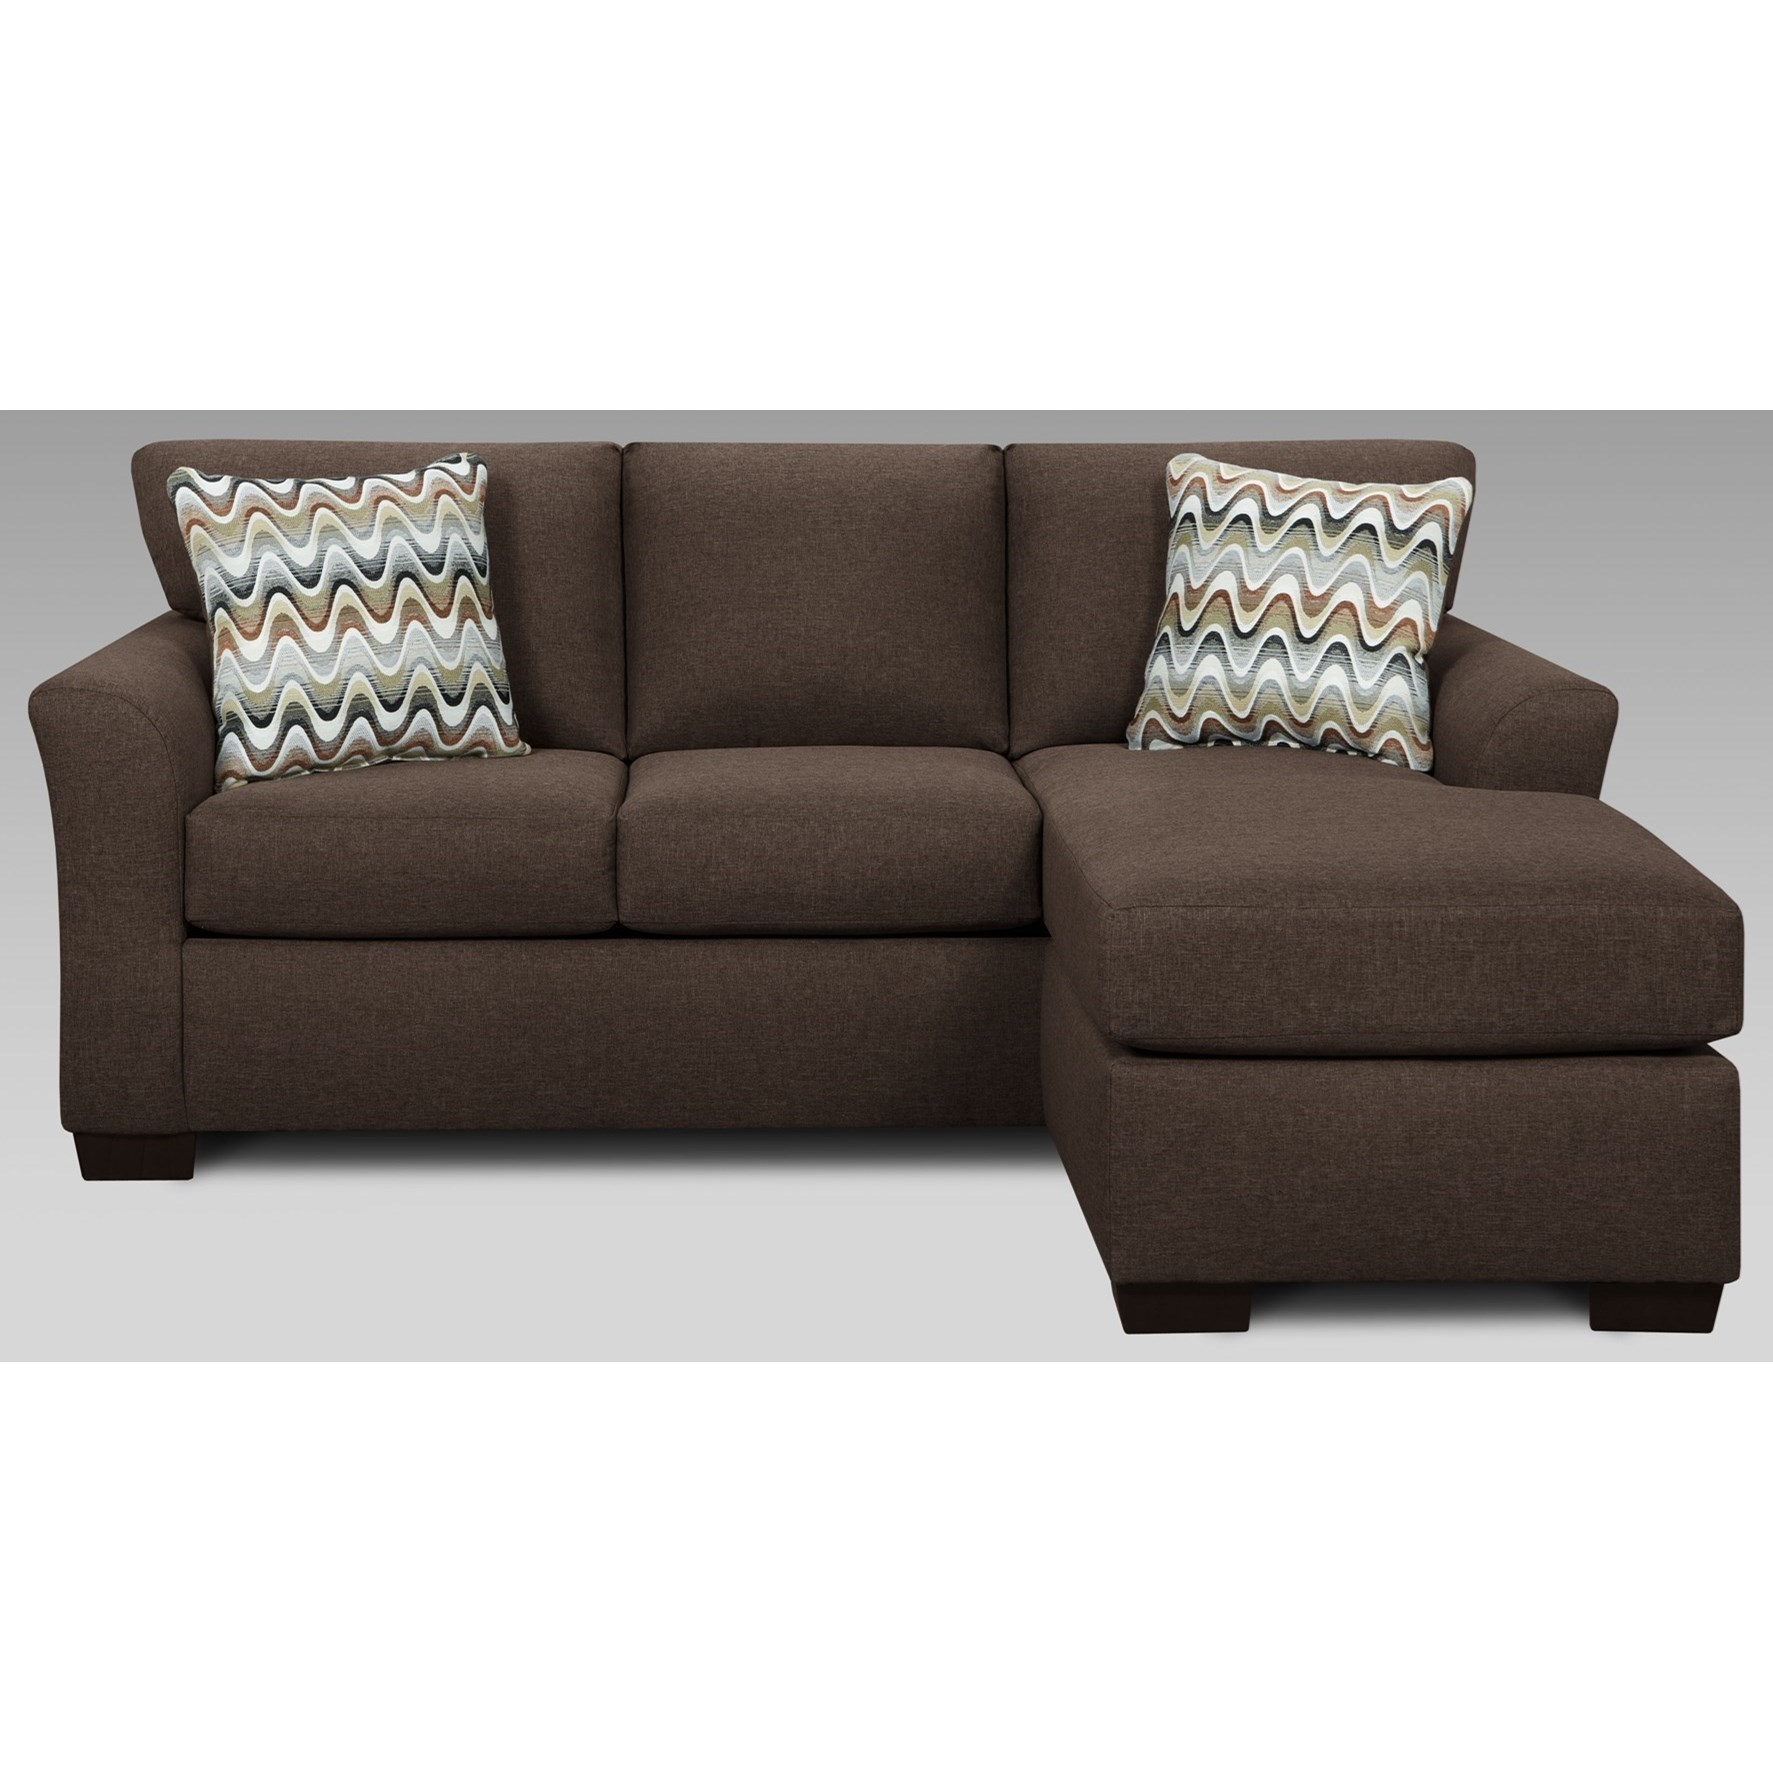 Affordable Furniture Cosmopolitan 3900 Sofa with Chaise